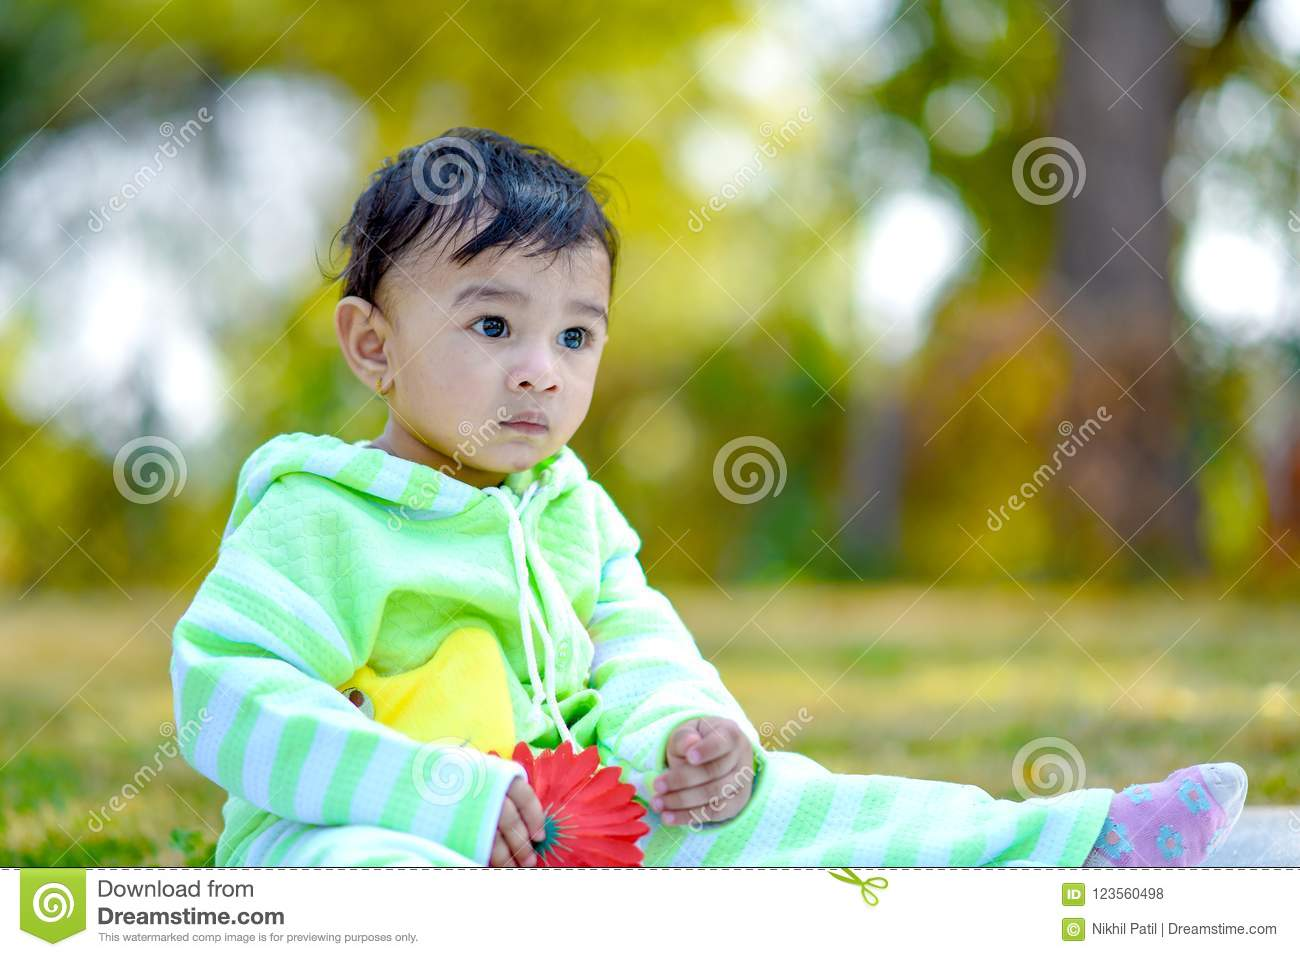 Cute Indian Baby Boy Playing At Garden Stock Photo - Image of cute